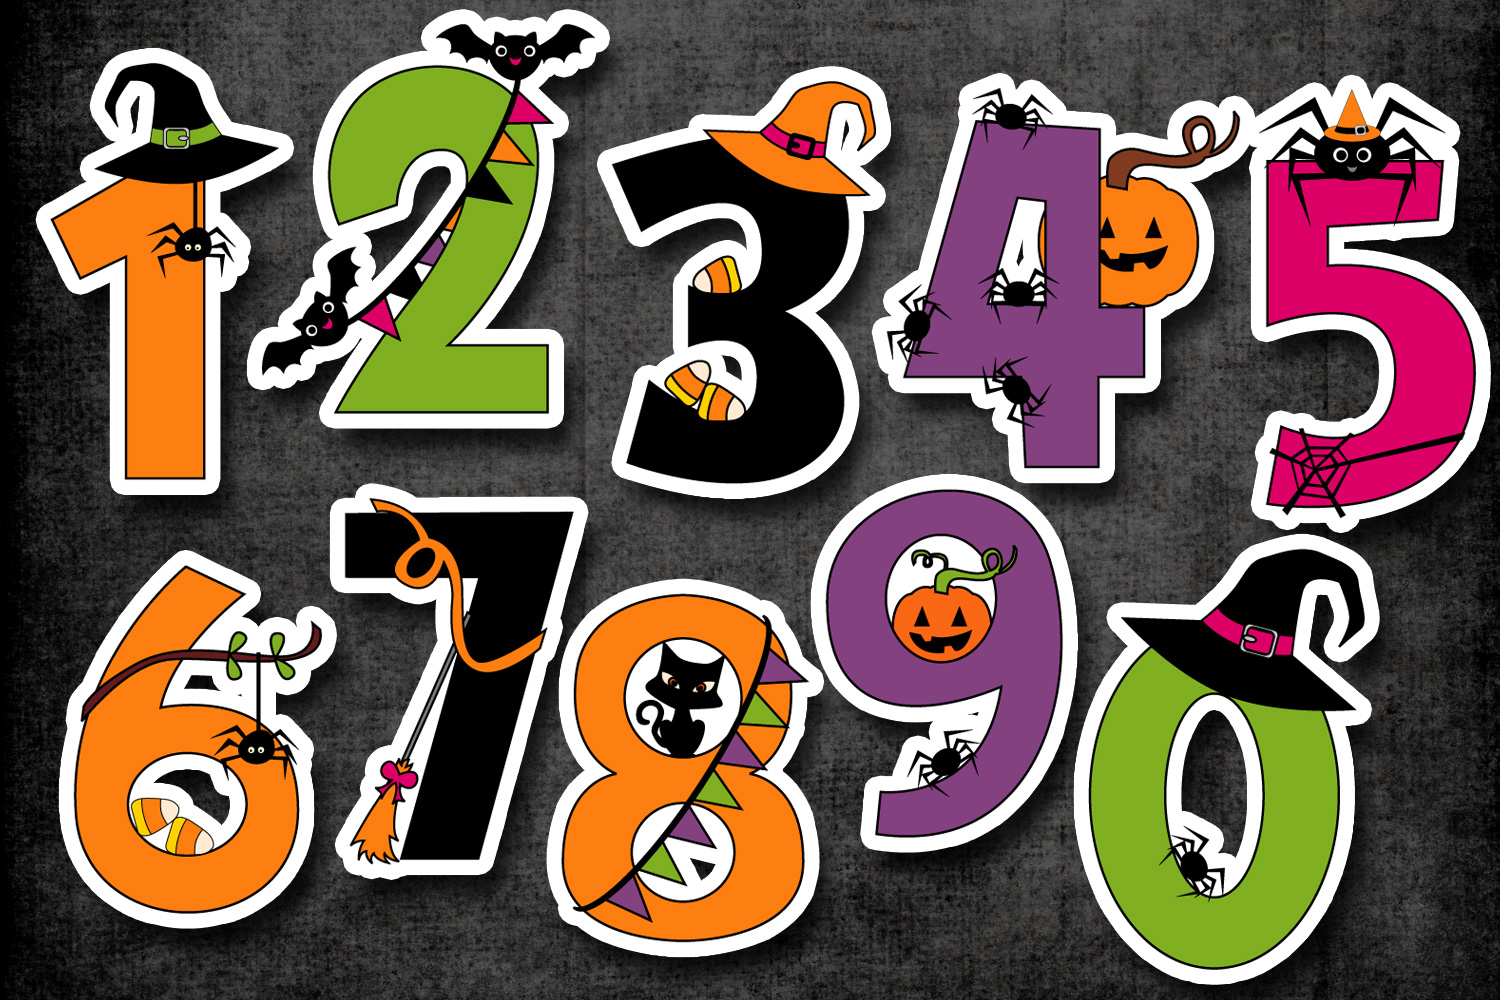 Number graphics clipart image royalty free Halloween numbers clipart graphic illustrations image royalty free